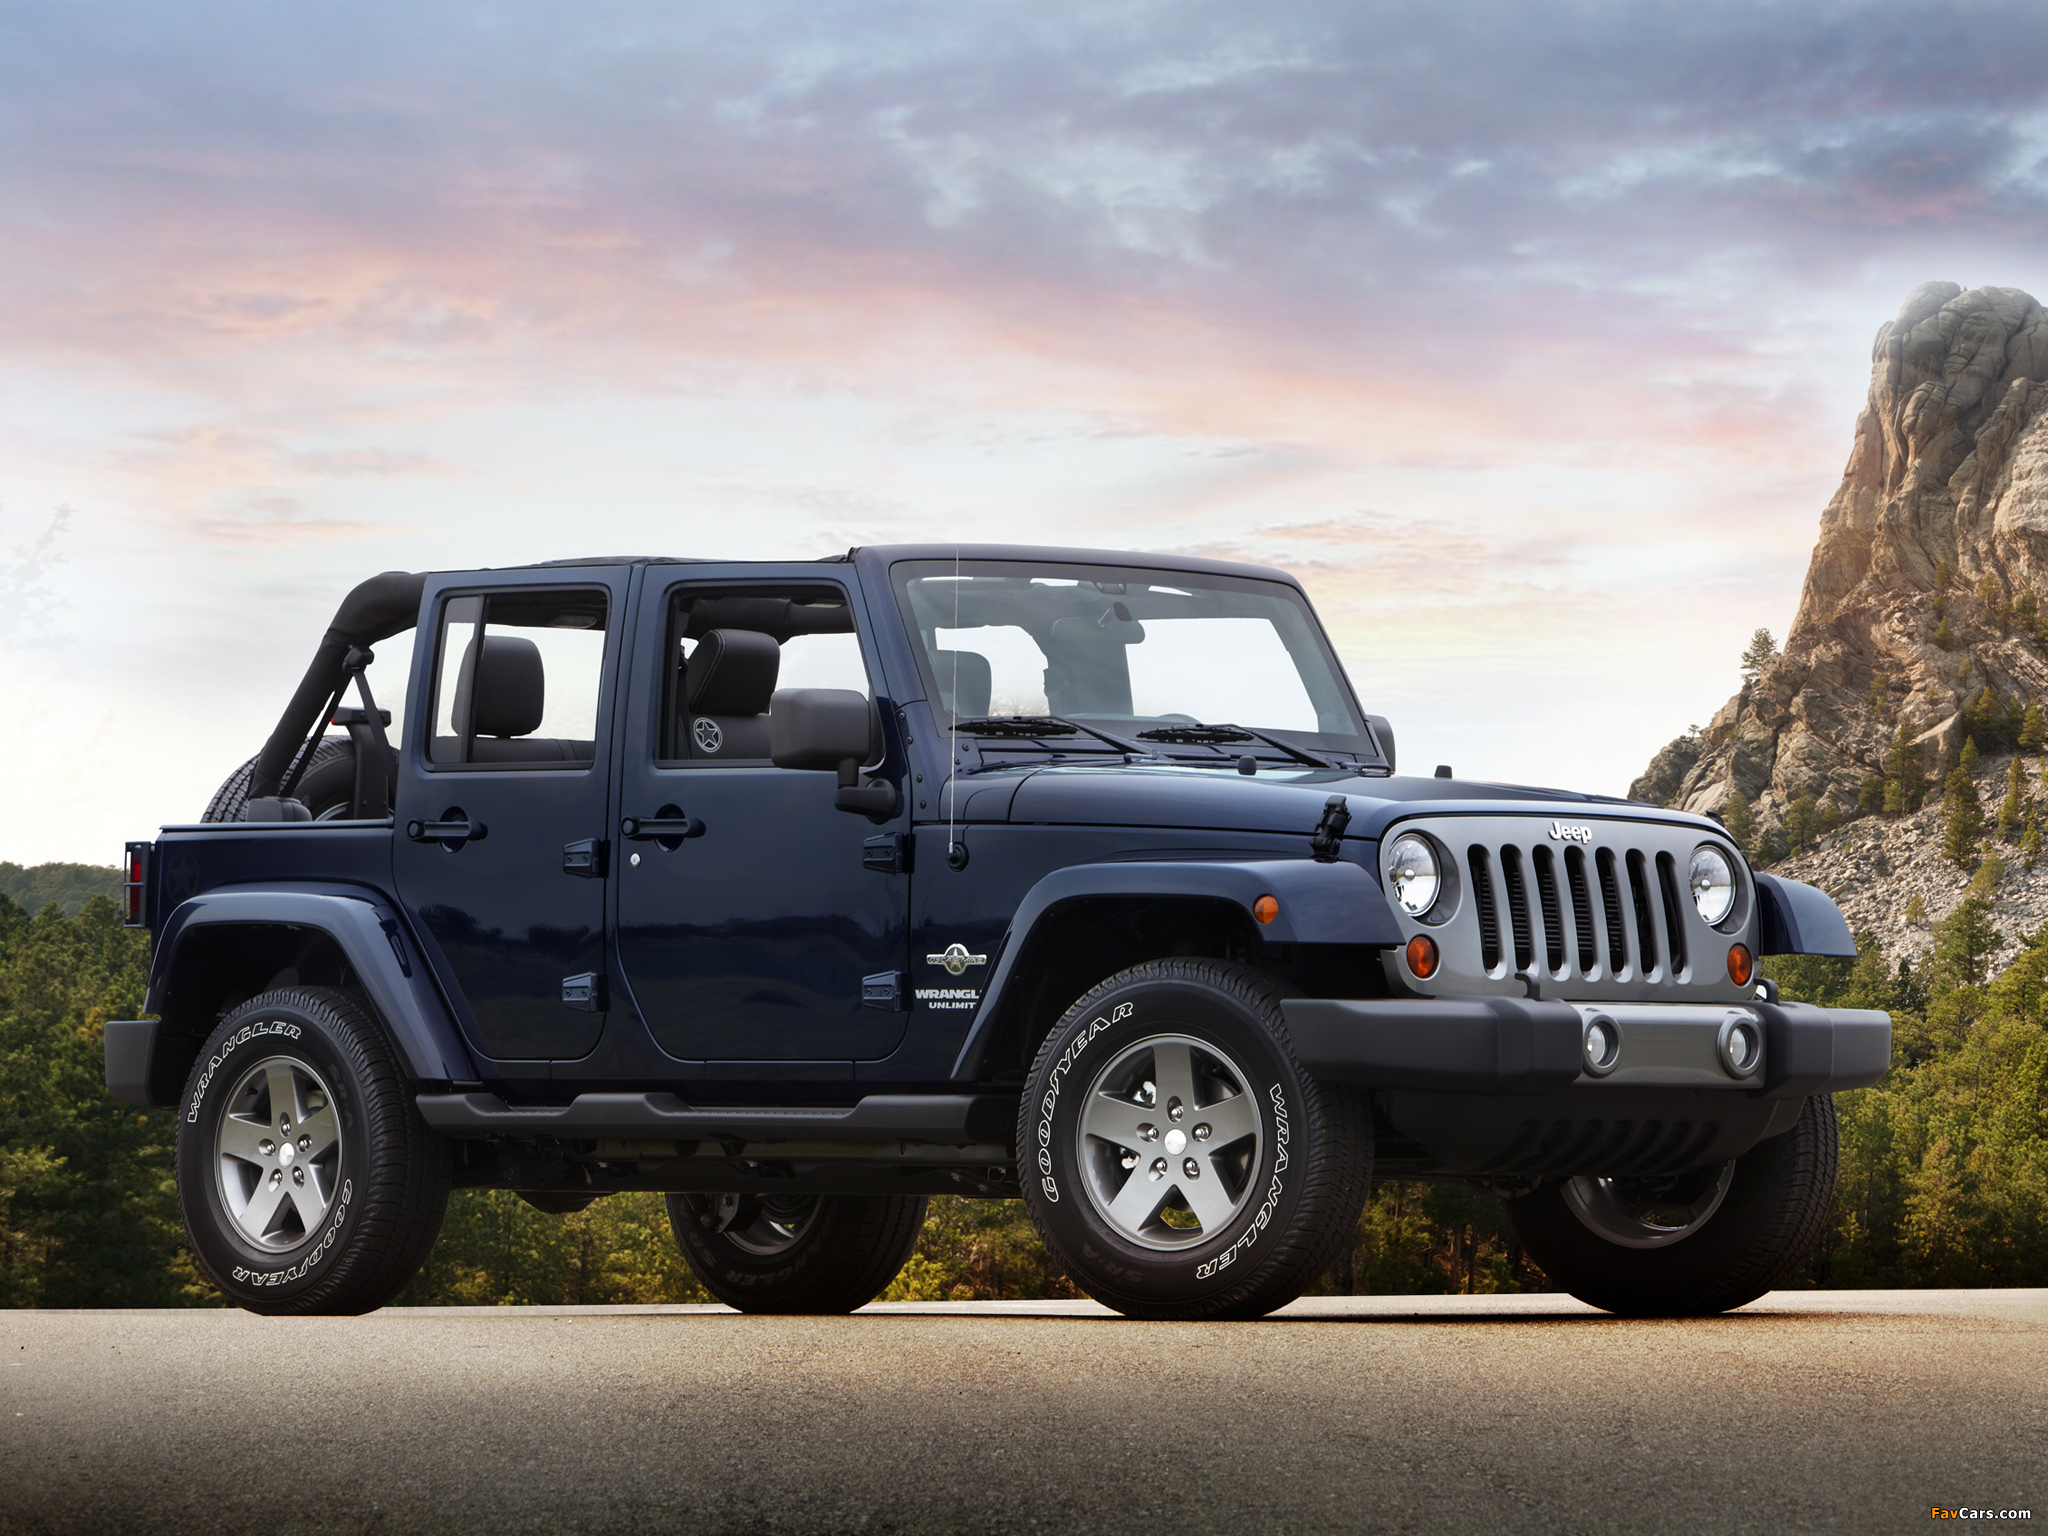 Jeep Wrangler Unlimited Freedom (JK) 2012 pictures (2048 x 1536)